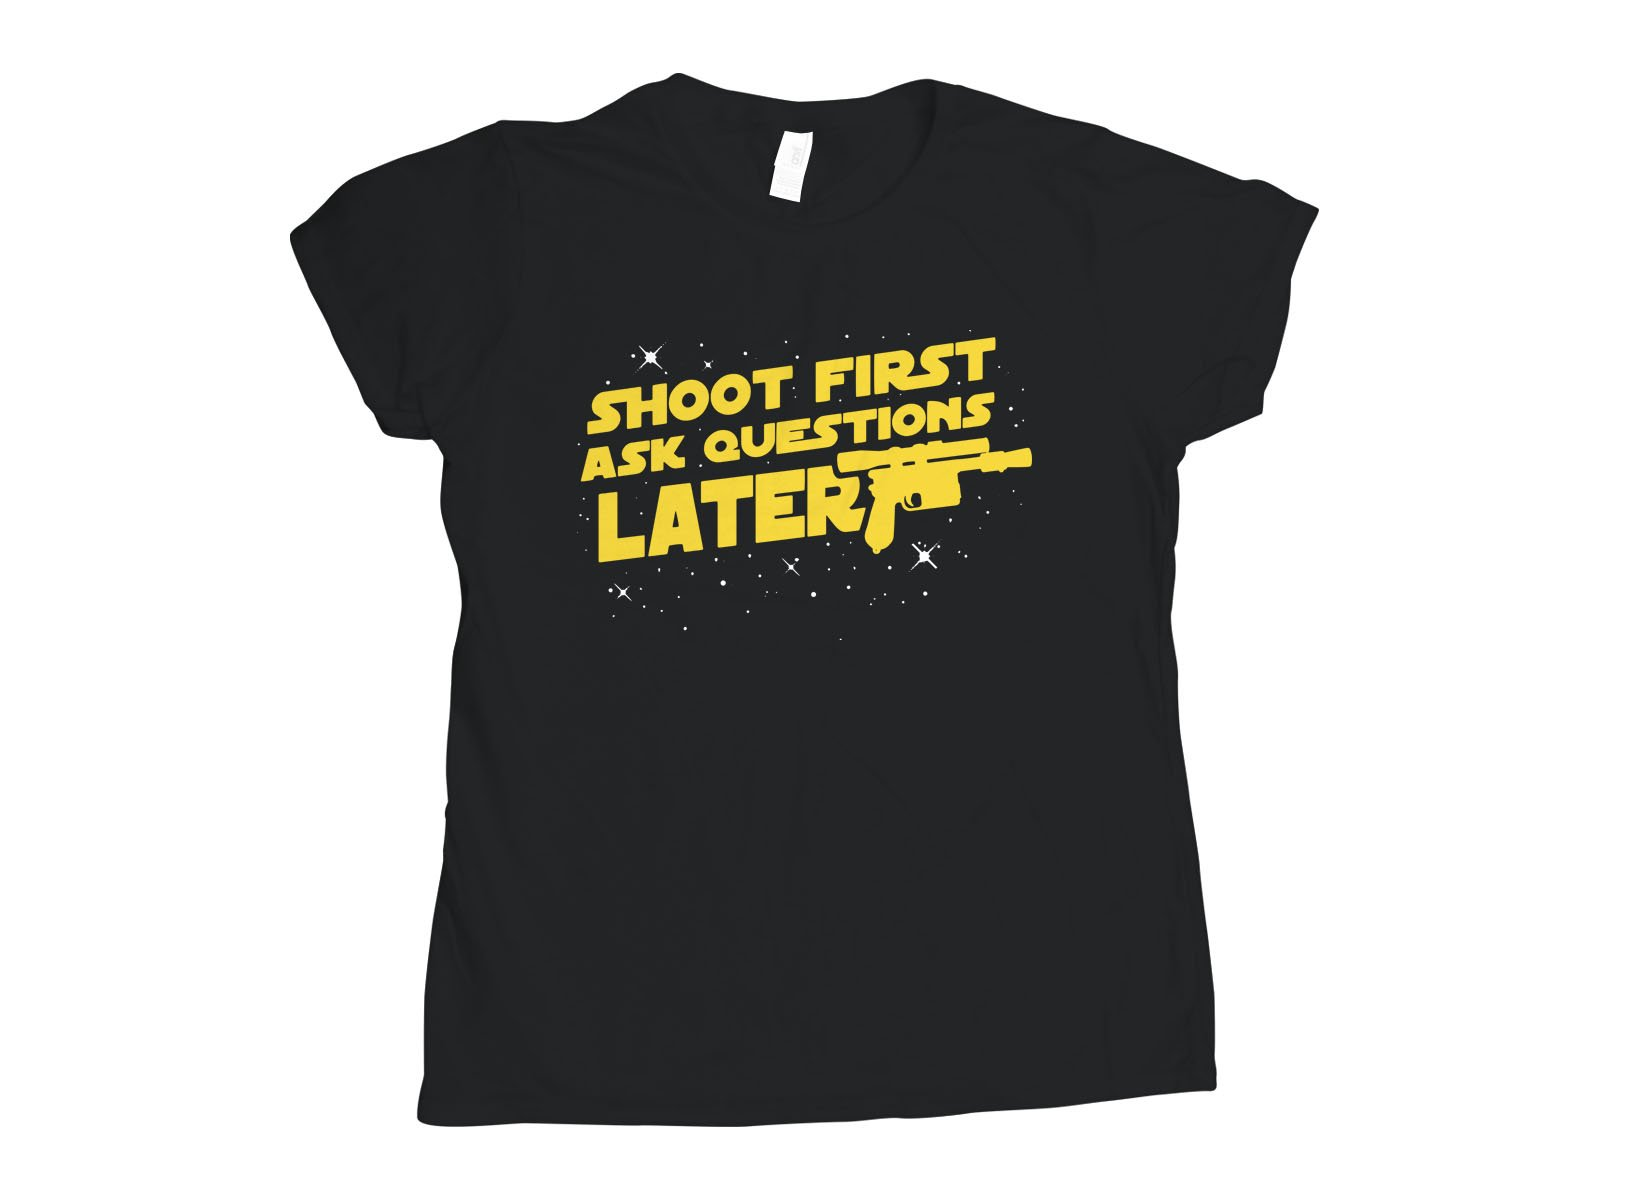 Shoot First Ask Questions Later on Womens T-Shirt